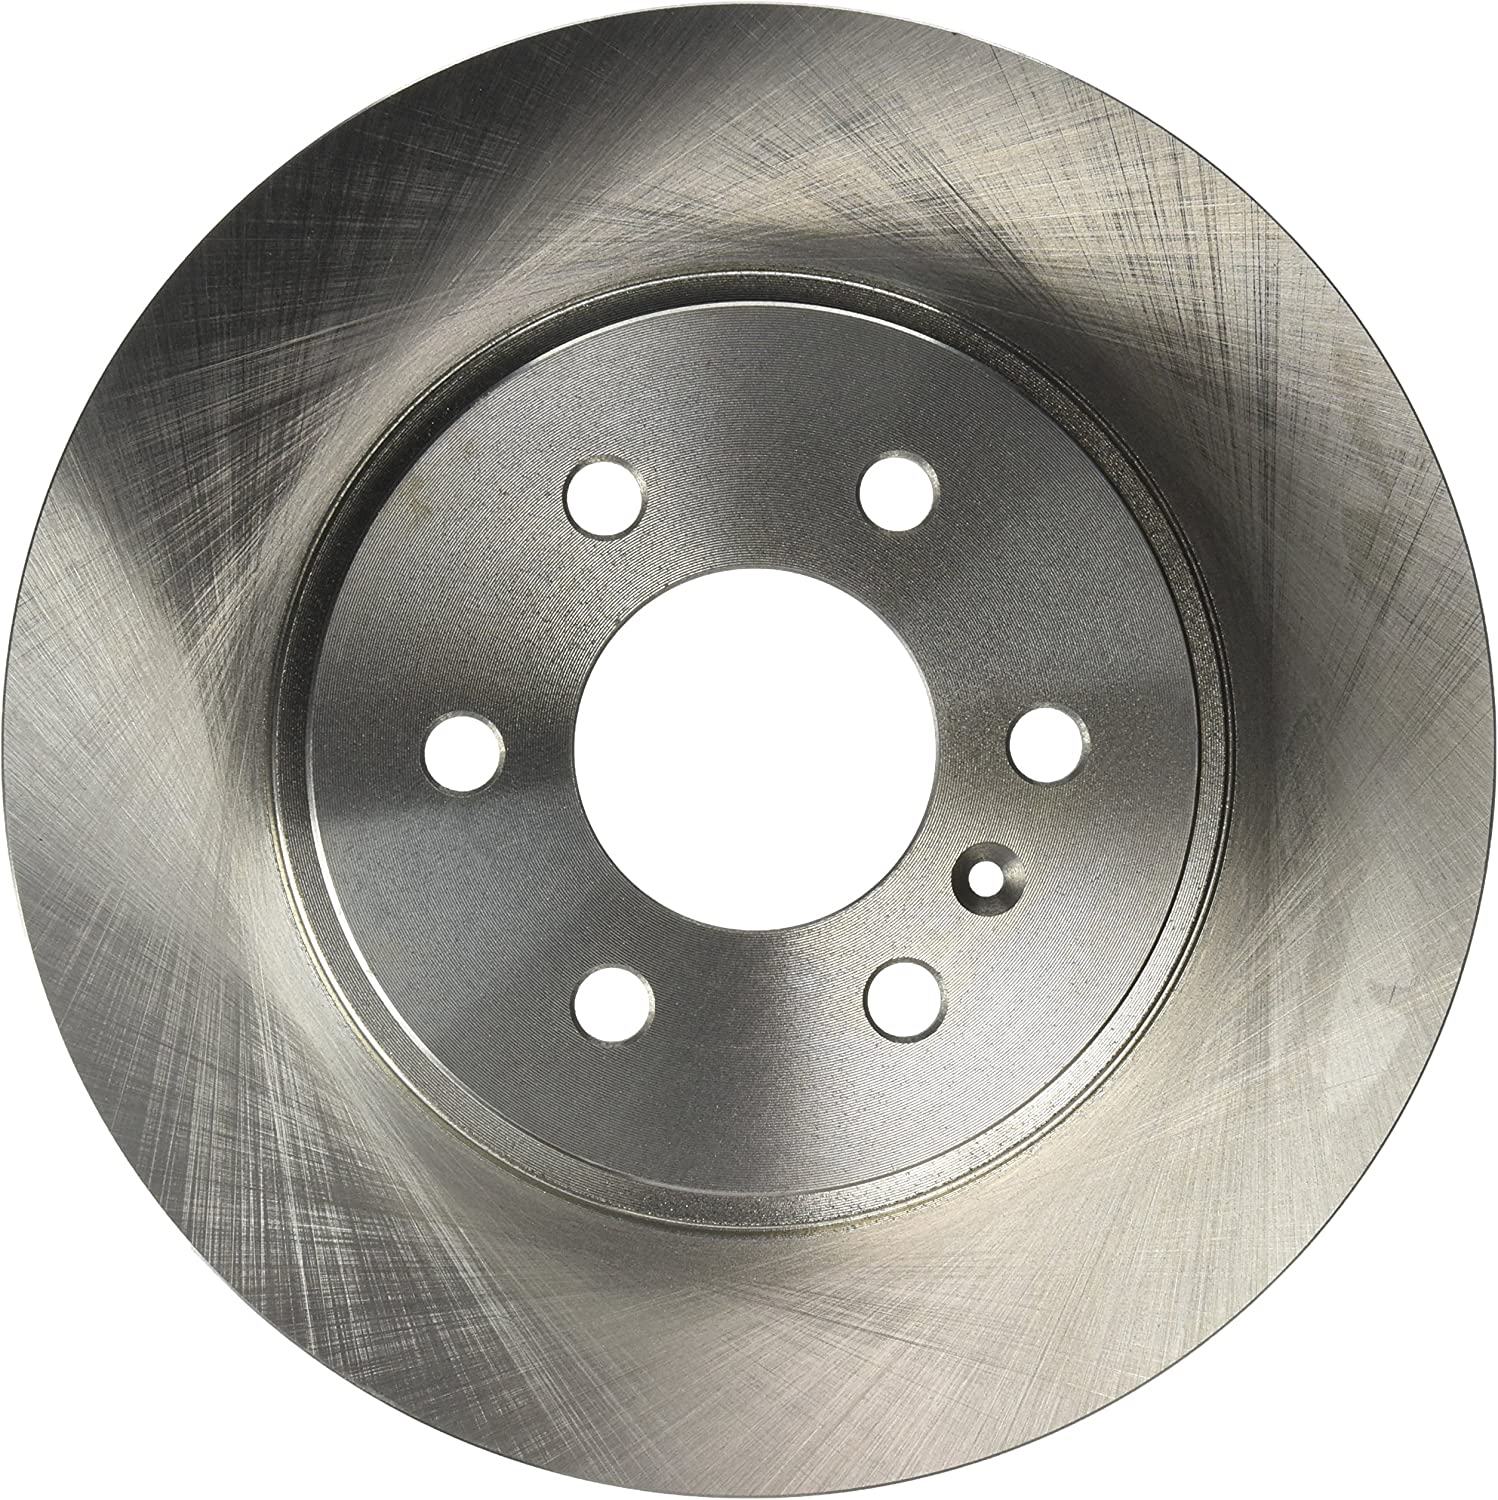 Centric Parts 121.66062 C-Tek Rotor Standard Brake Max 79% OFF All stores are sold